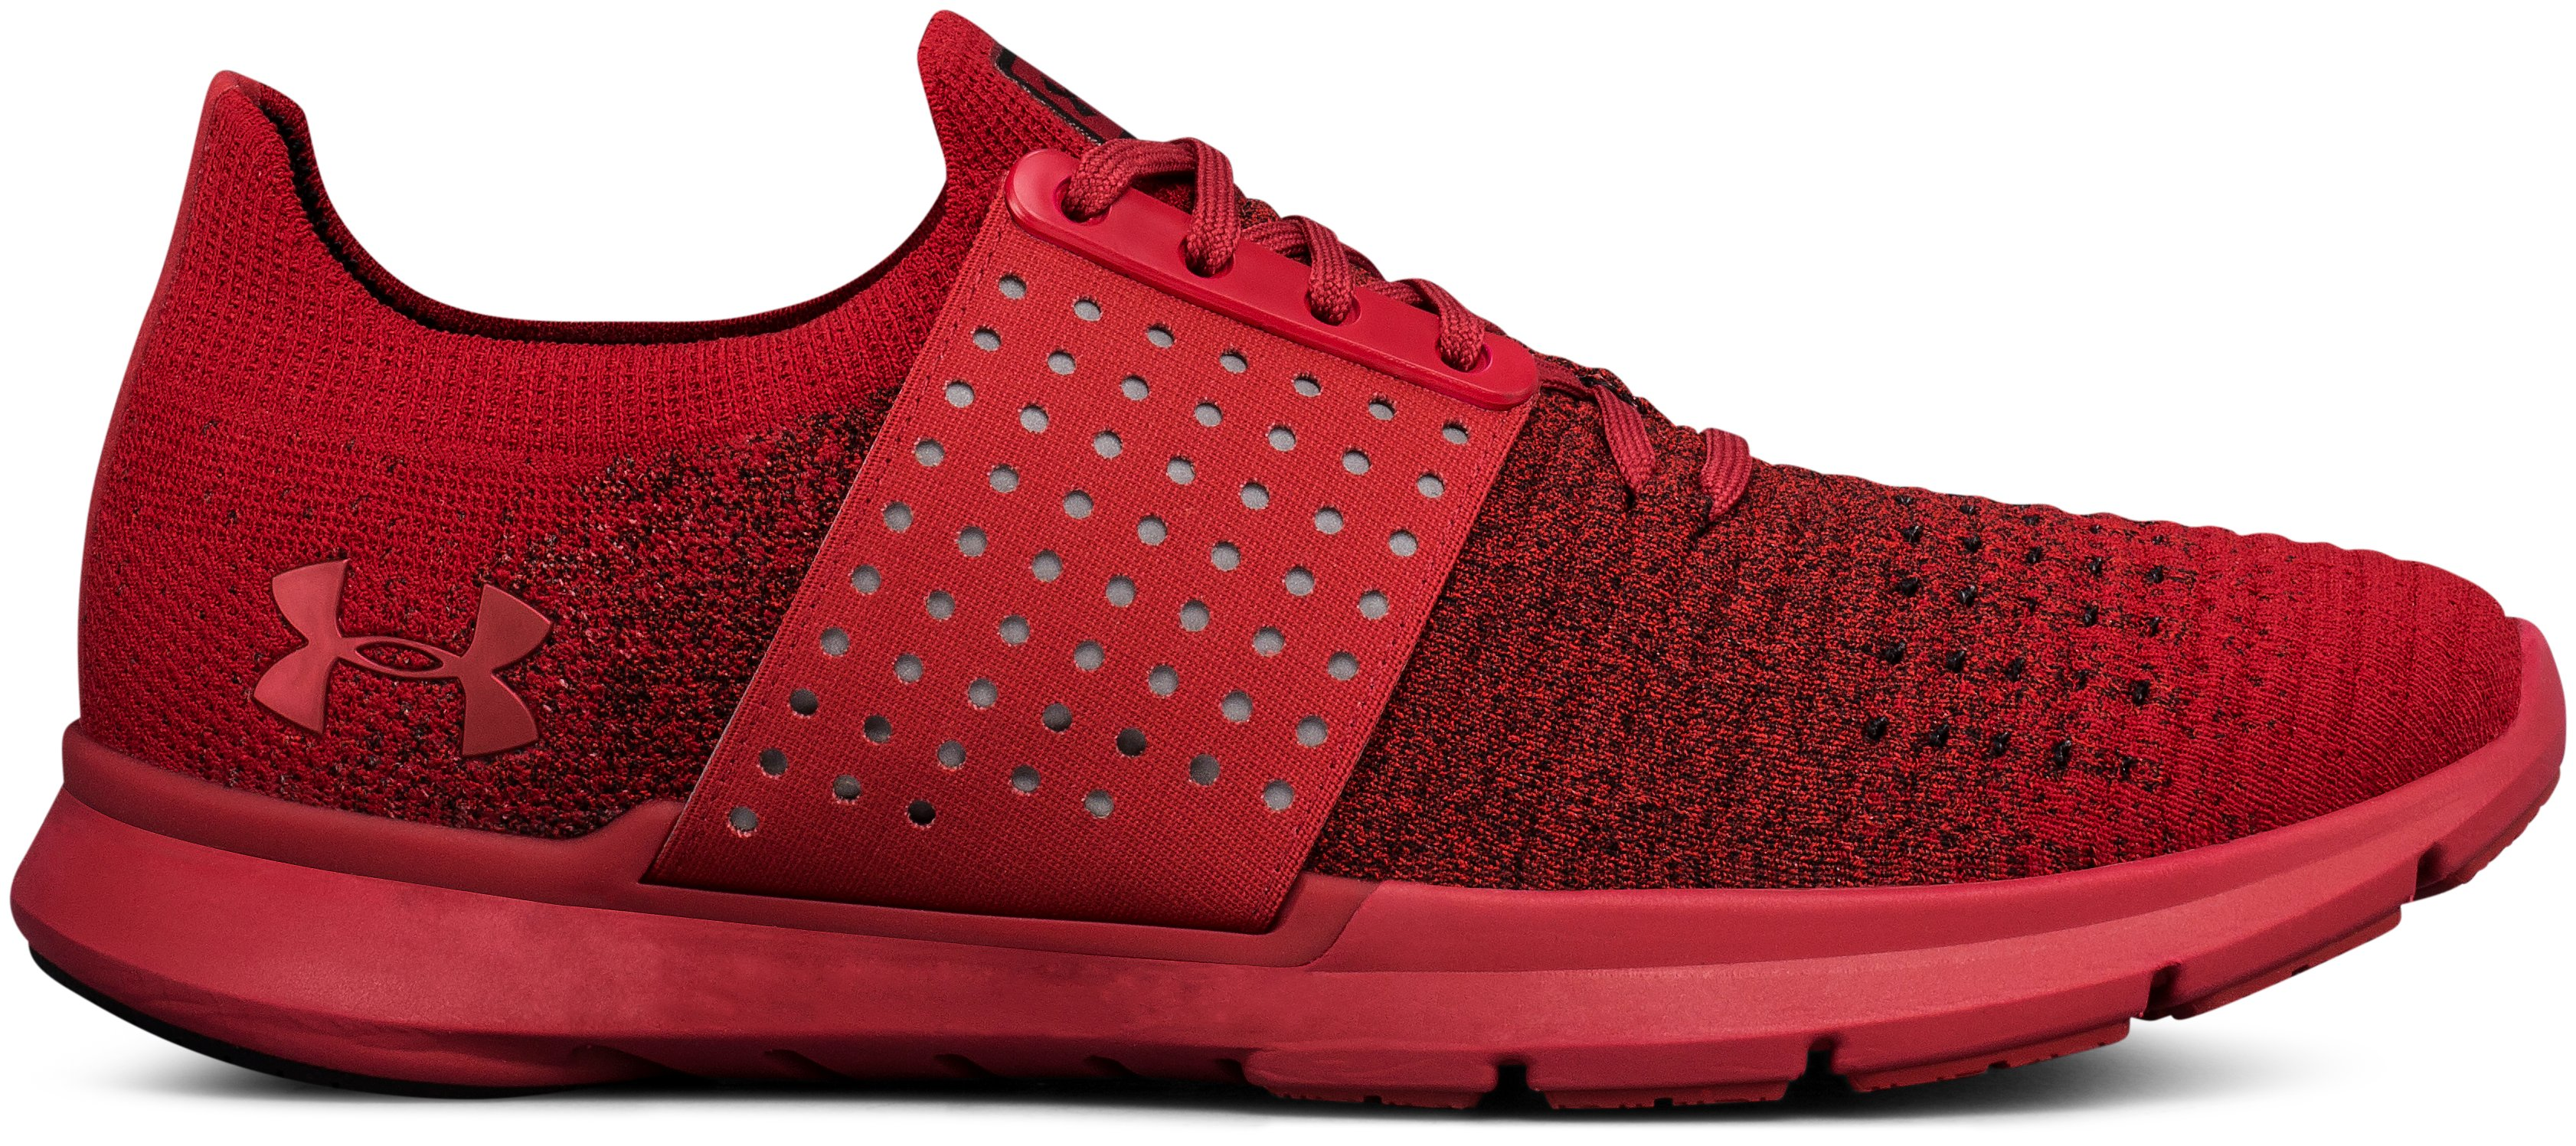 Men's UA Threadborne Slingwrap Fade Lifestyle Shoes, SPICE RED